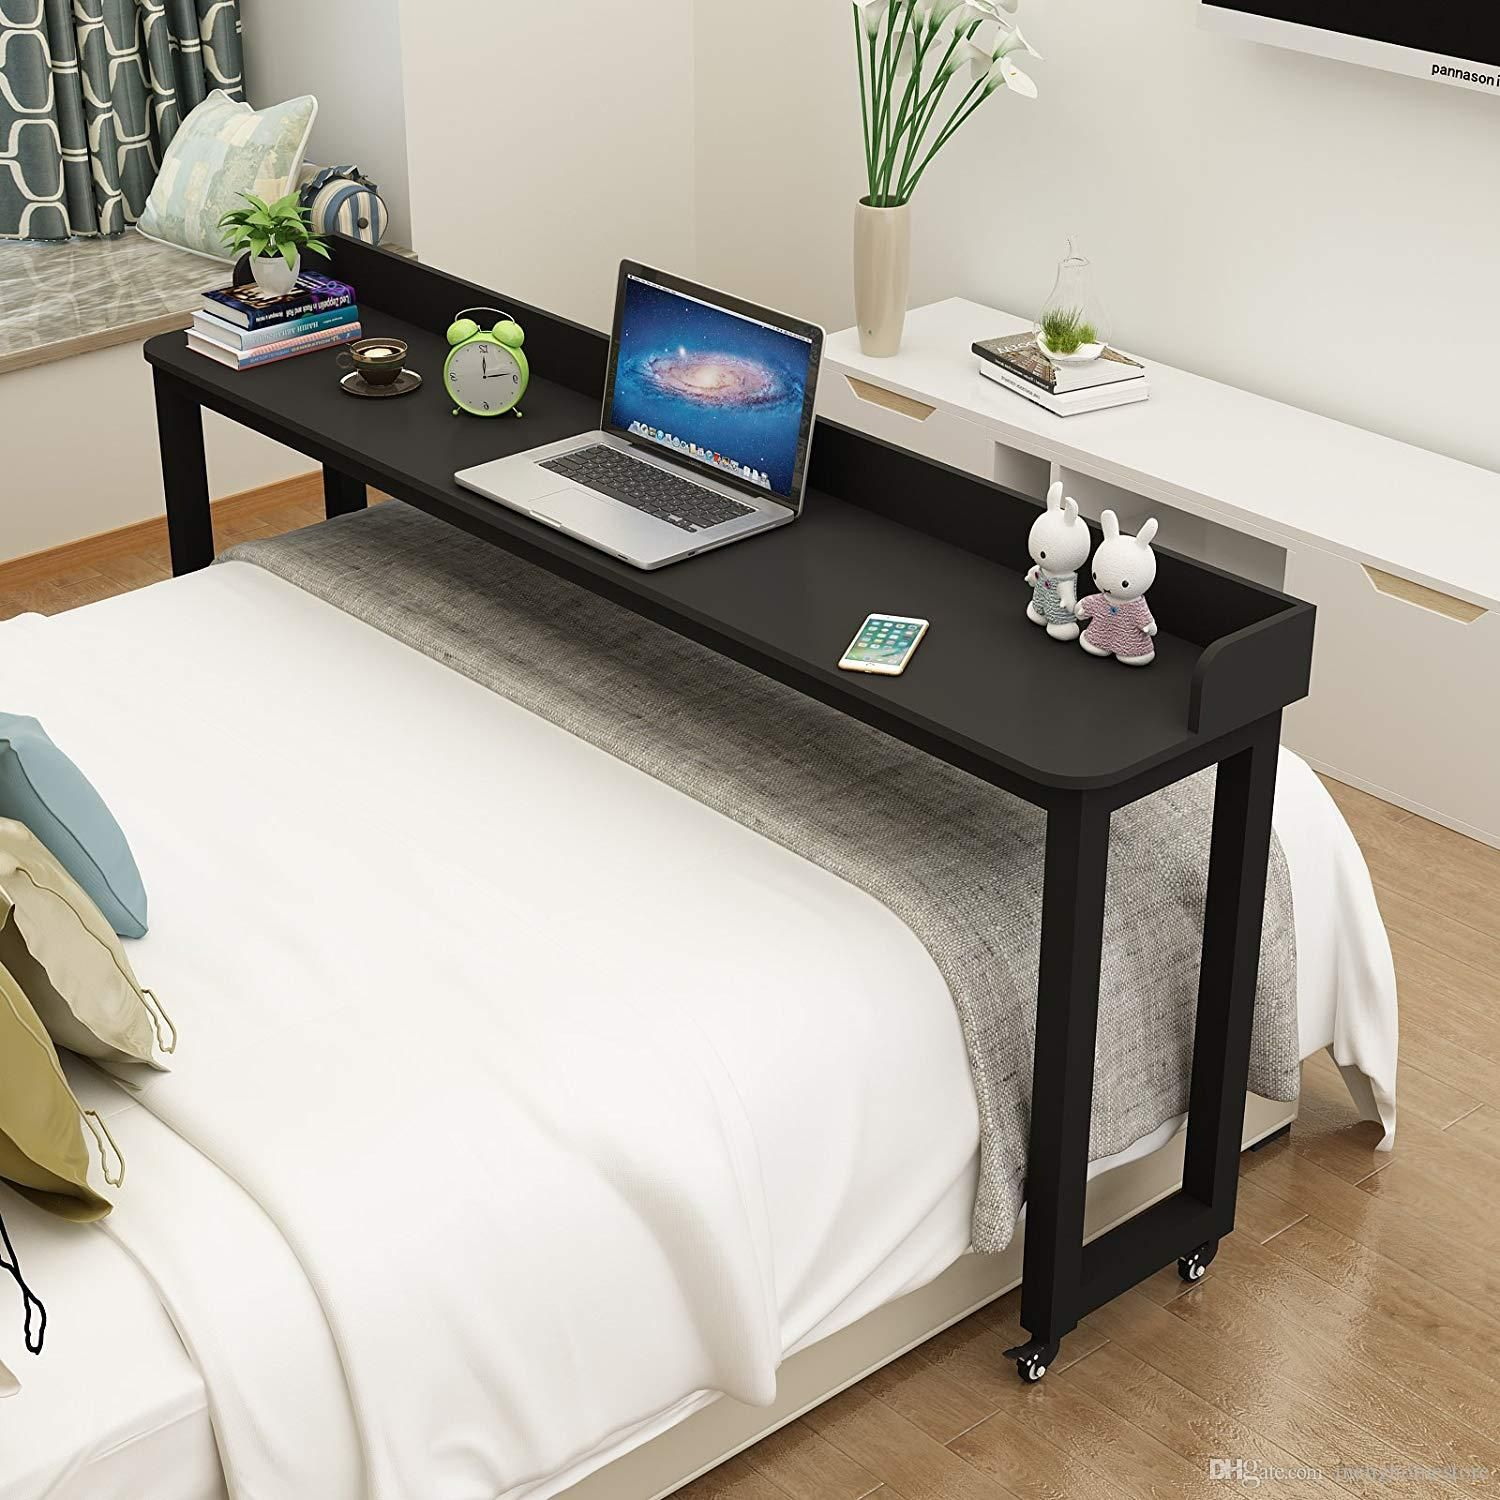 Build A Table Bed Instantly In 2020 Bed Table Laptop Desk For Bed Overbed Table